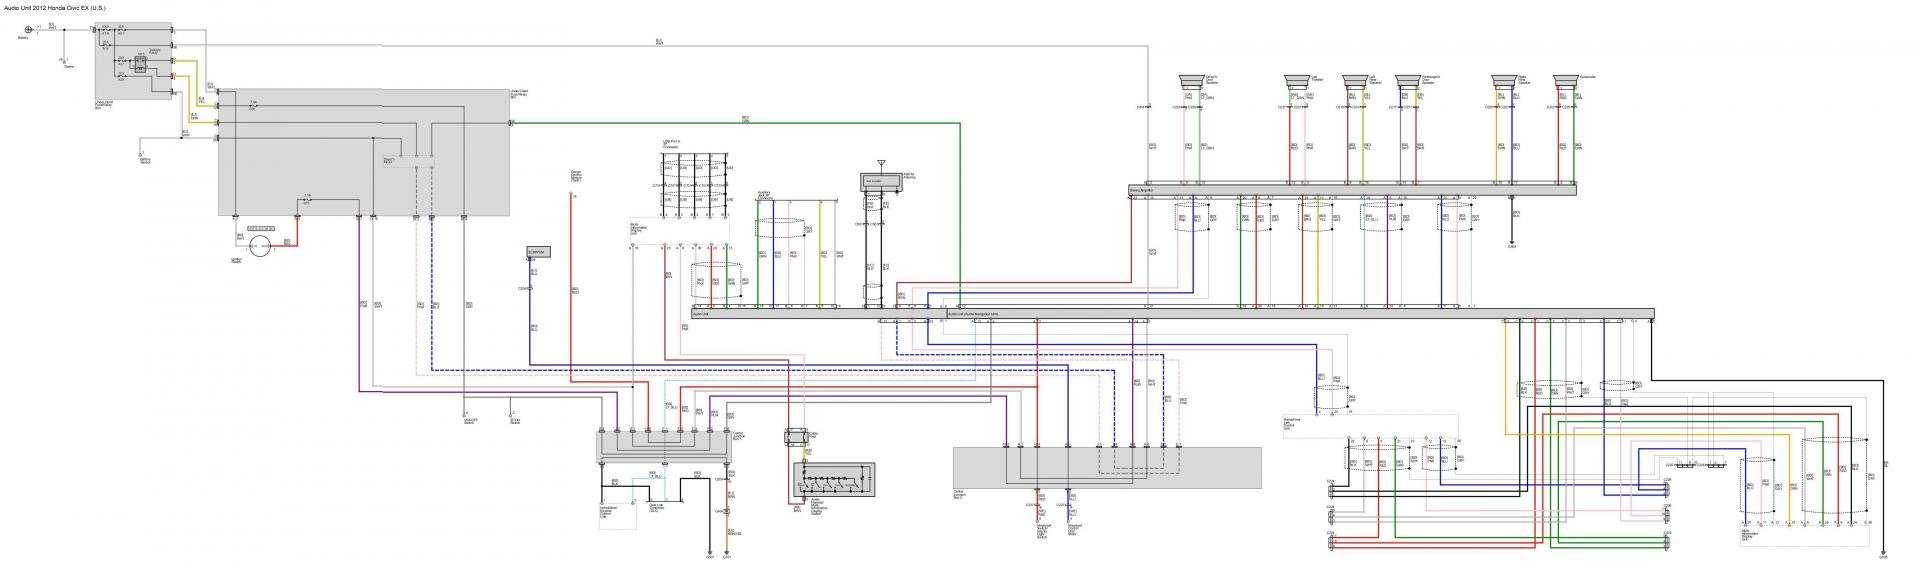 hight resolution of audio wiring diagrams post em if you got em audio wiring